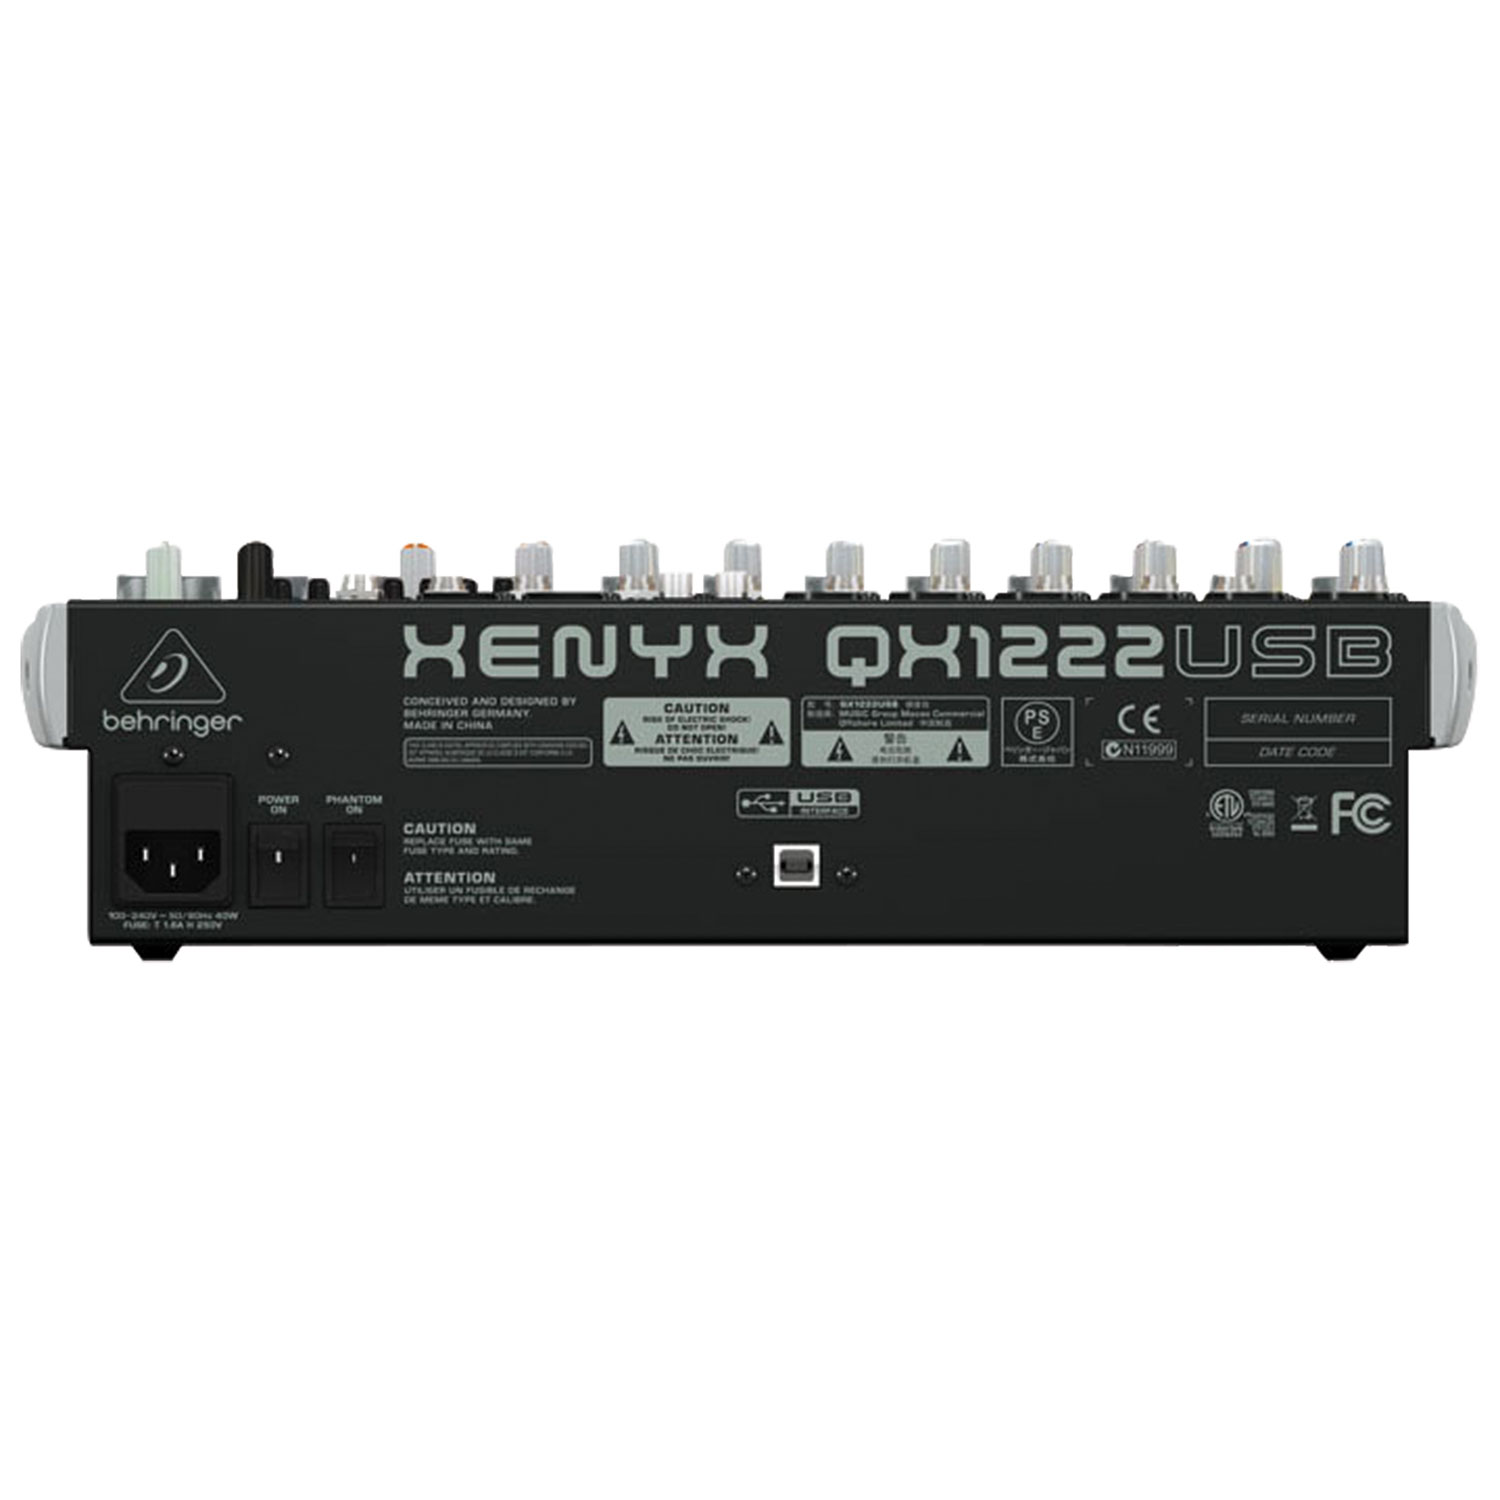 Behringer Xenyx 16 Channel Usb Mixer Qx1222usb Dj Mixers Cd Electro Help 32 Inch Philips Lcd Tv Power Supply Smps Schematic Turntables Best Buy Canada